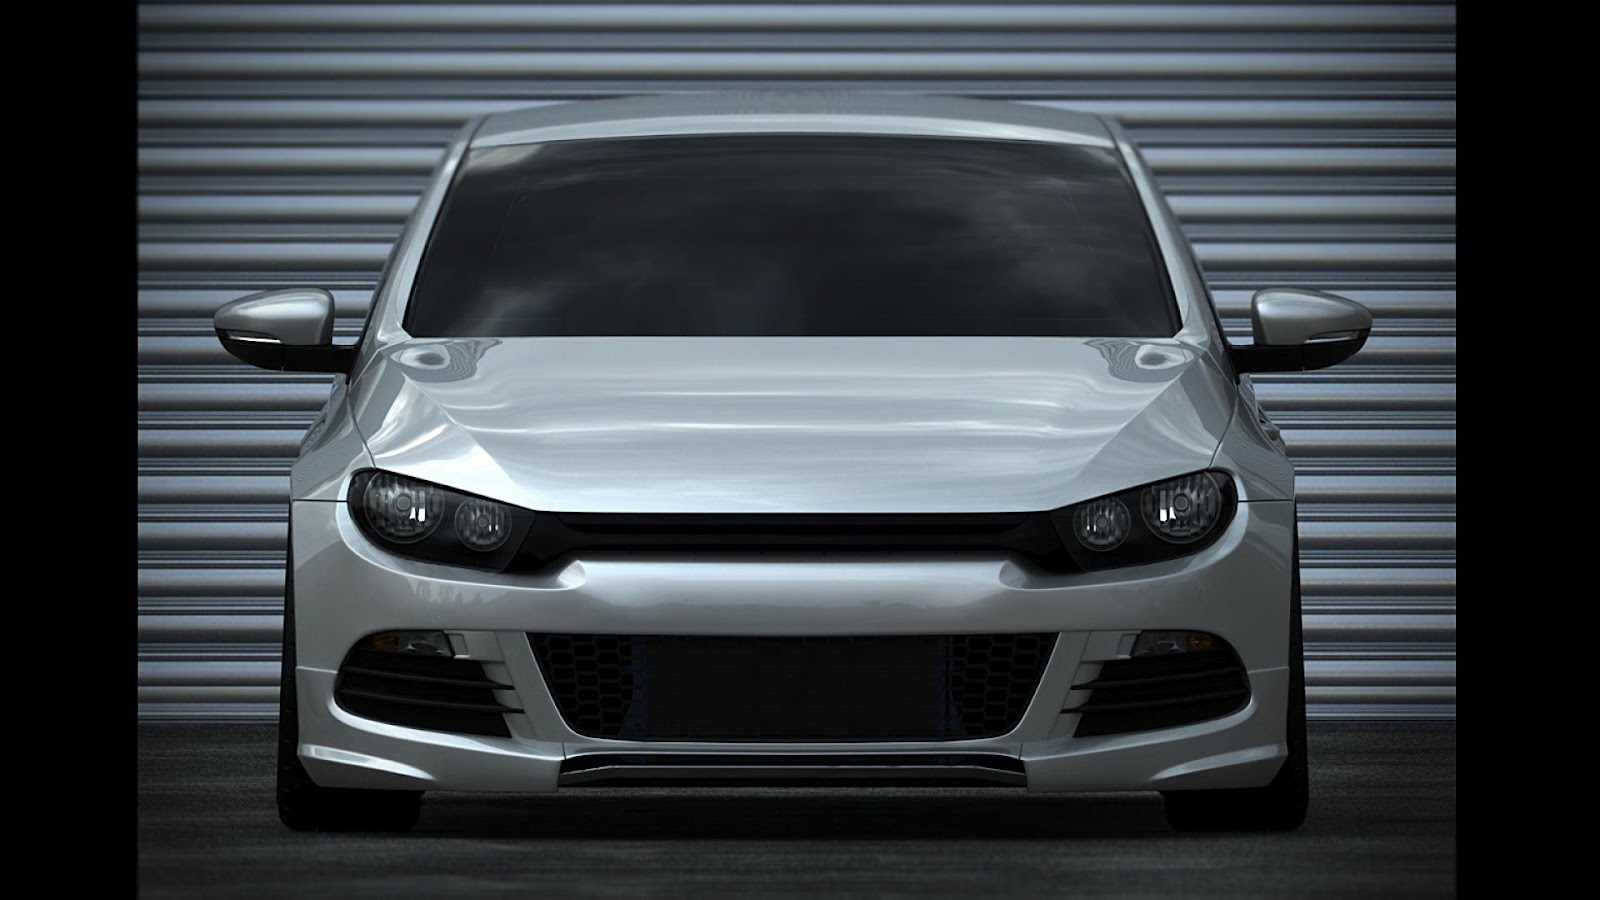 Cars HD Volkswagen Scirocco HD Wallpapers 1600x900